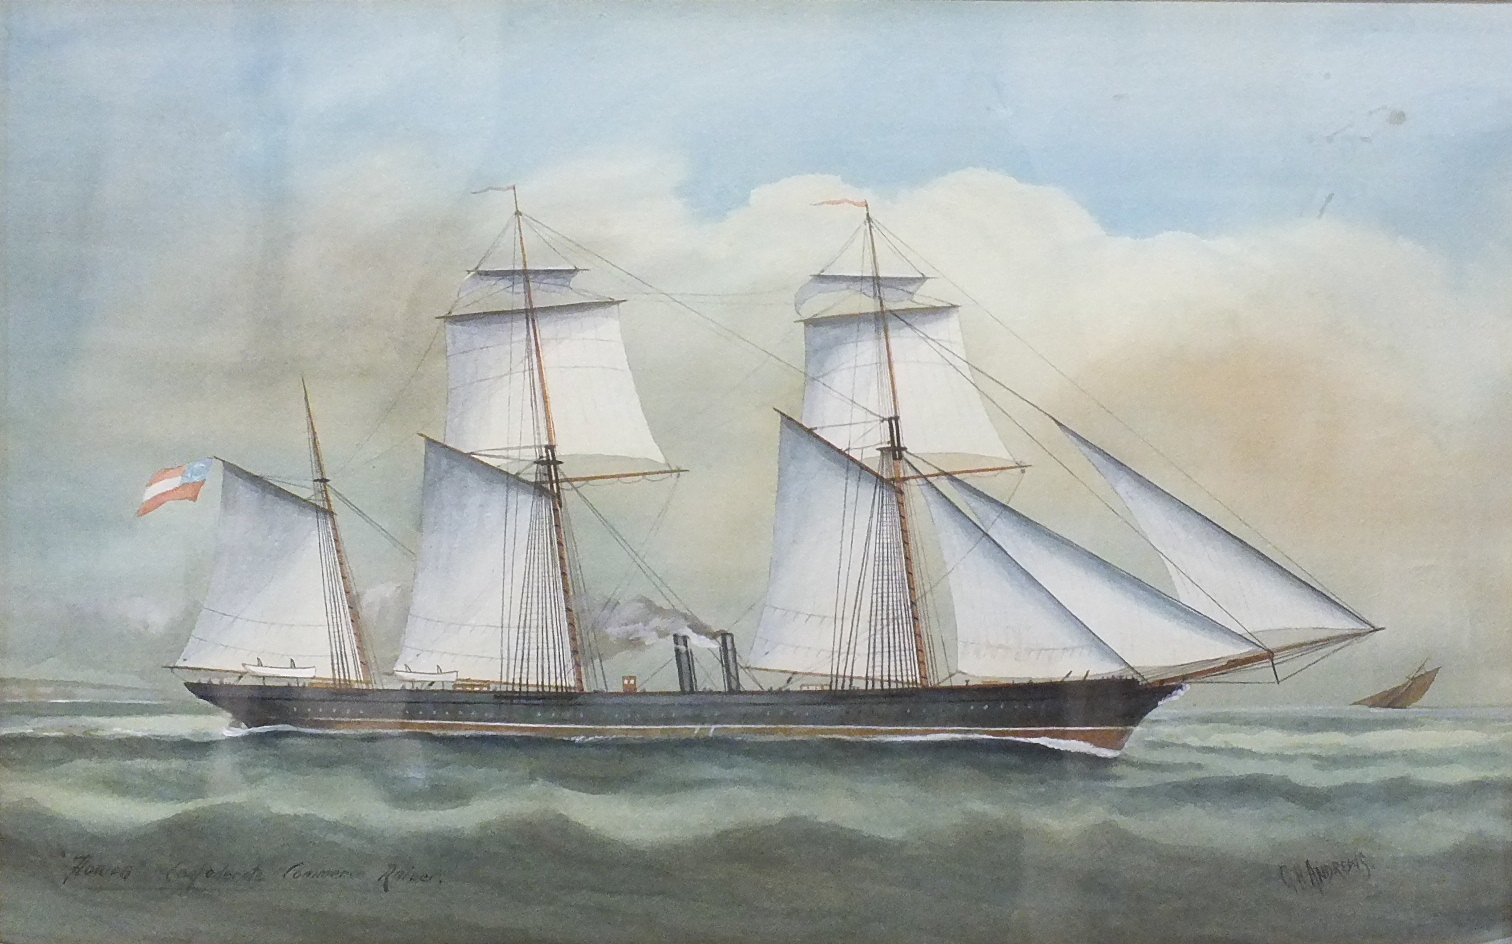 Lot 78 - George Henry Andrews (1816-1898) FLORIDA CONFEDERATE COMMERCE RAIDER Signed and titled